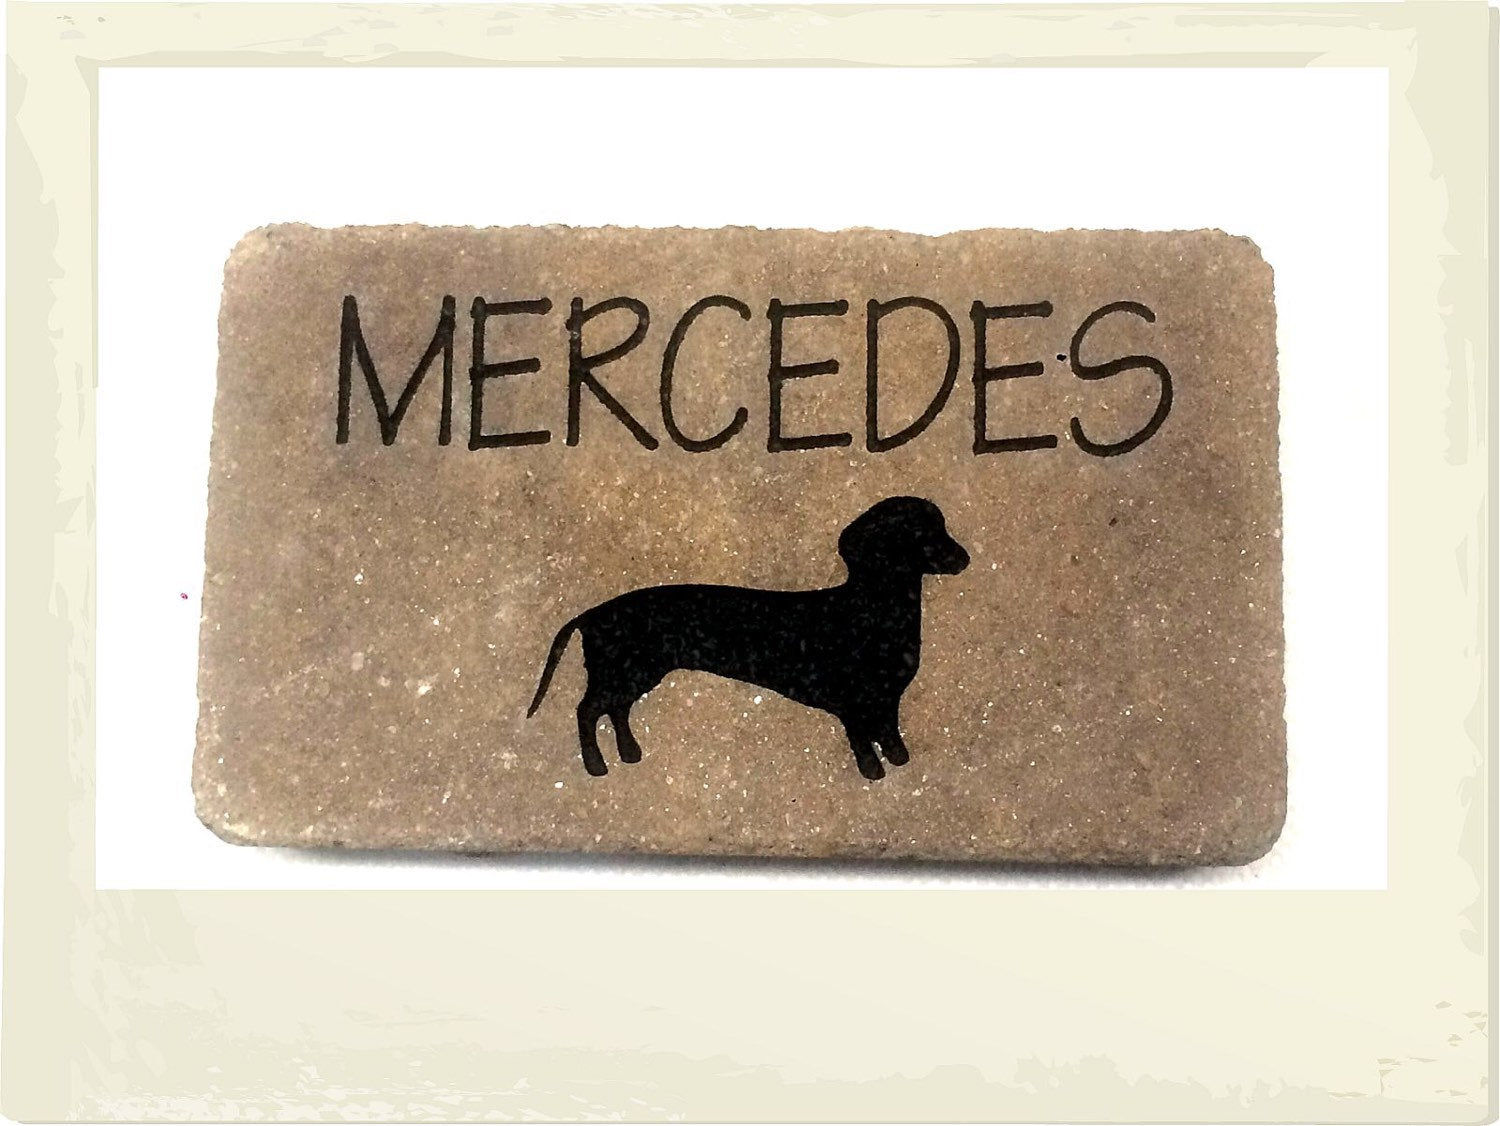 Pet Stone Memorial Grave Marker / Headstone Add your own beloved ...